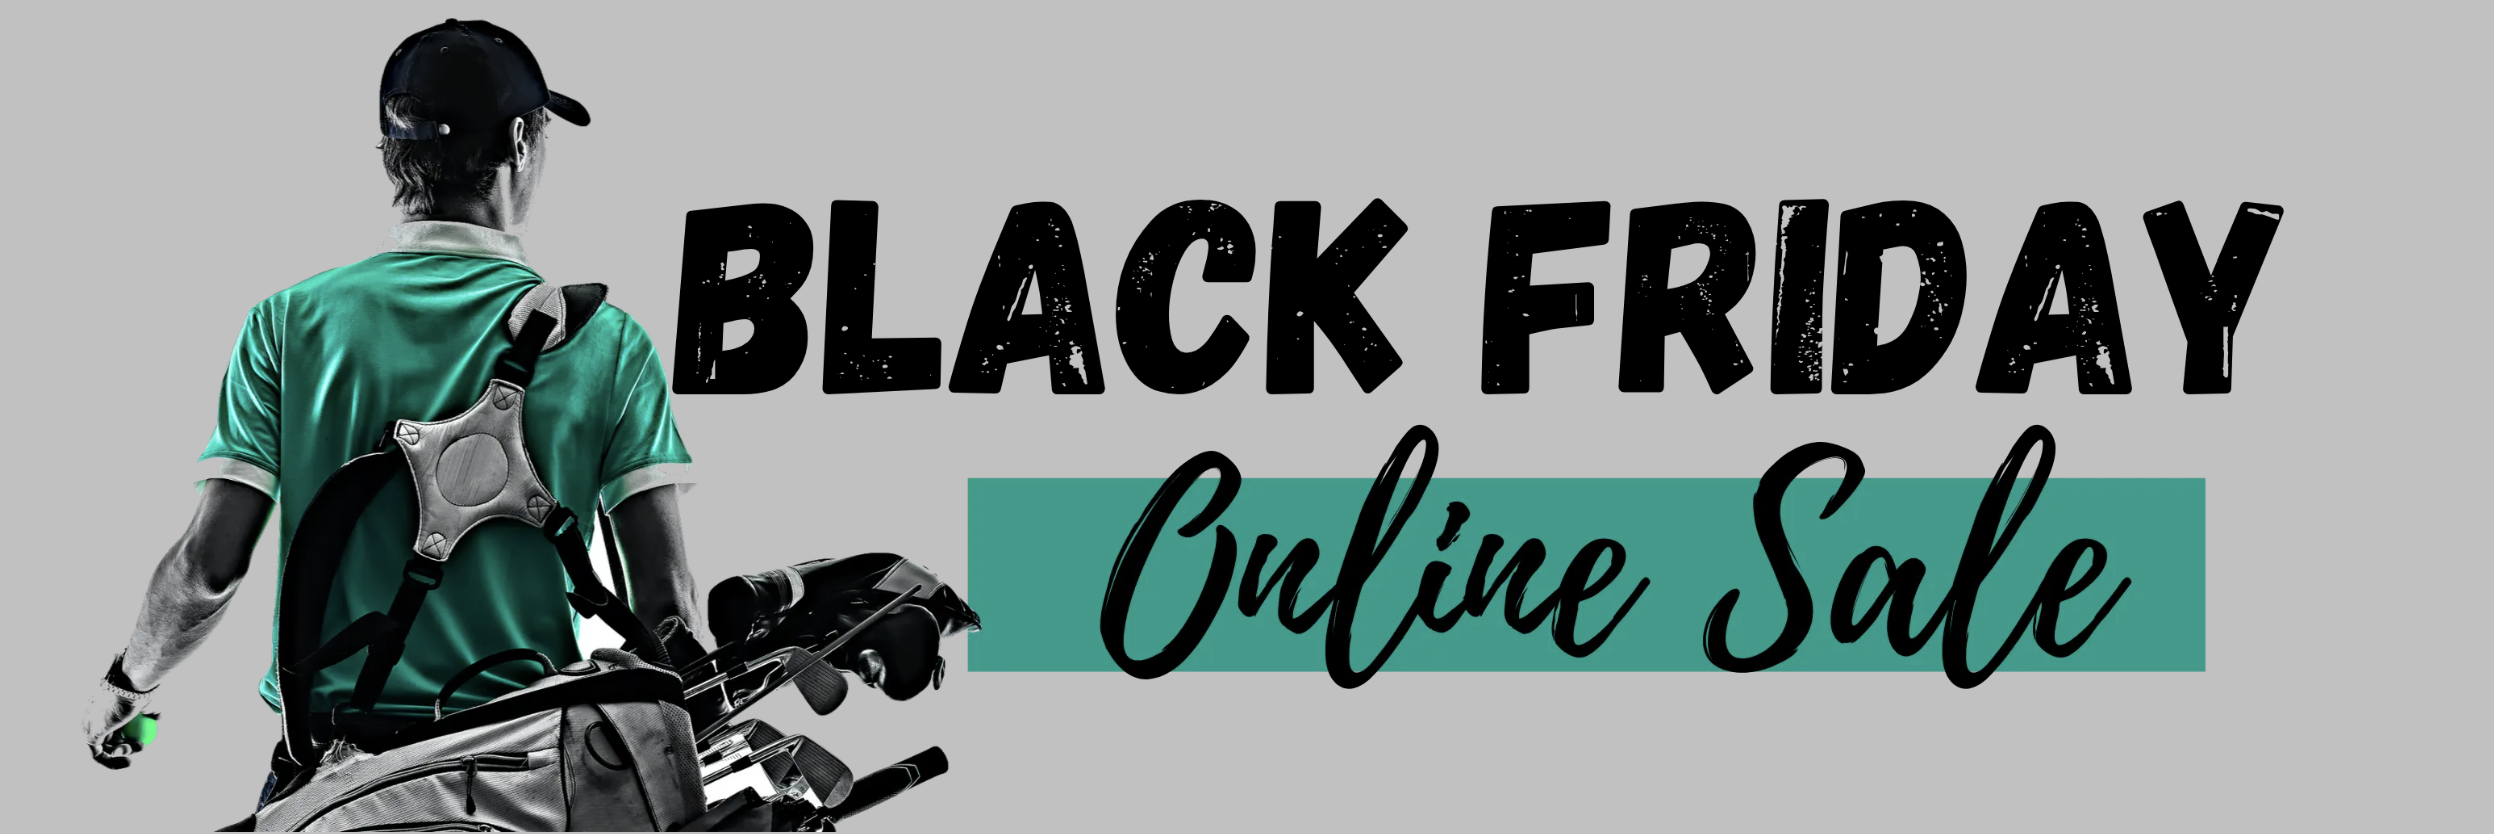 Our Pre-Black Friday Sale starts this Friday!